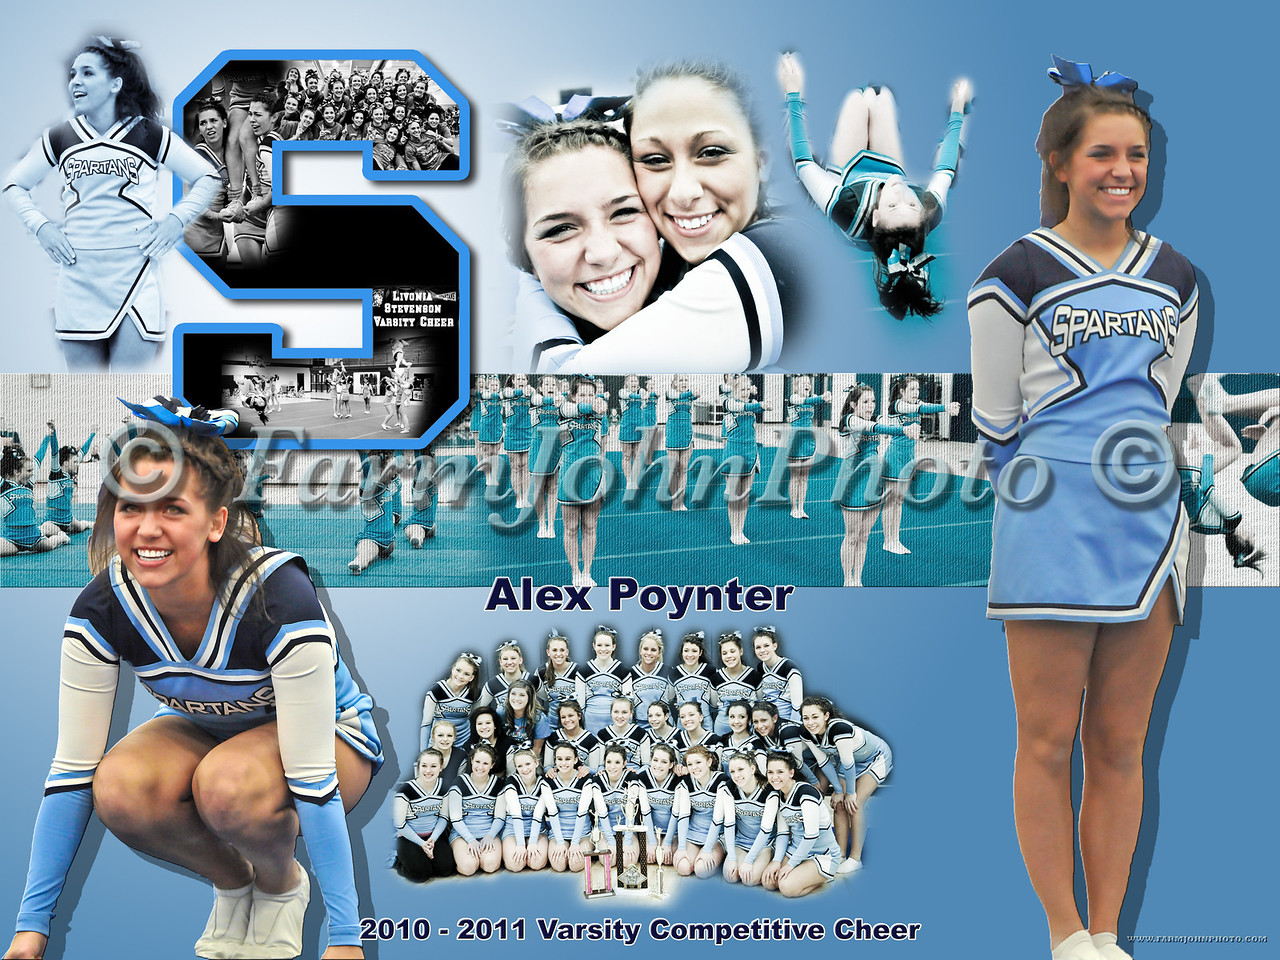 Alex Poynter 24 x 18 Format Proof 2